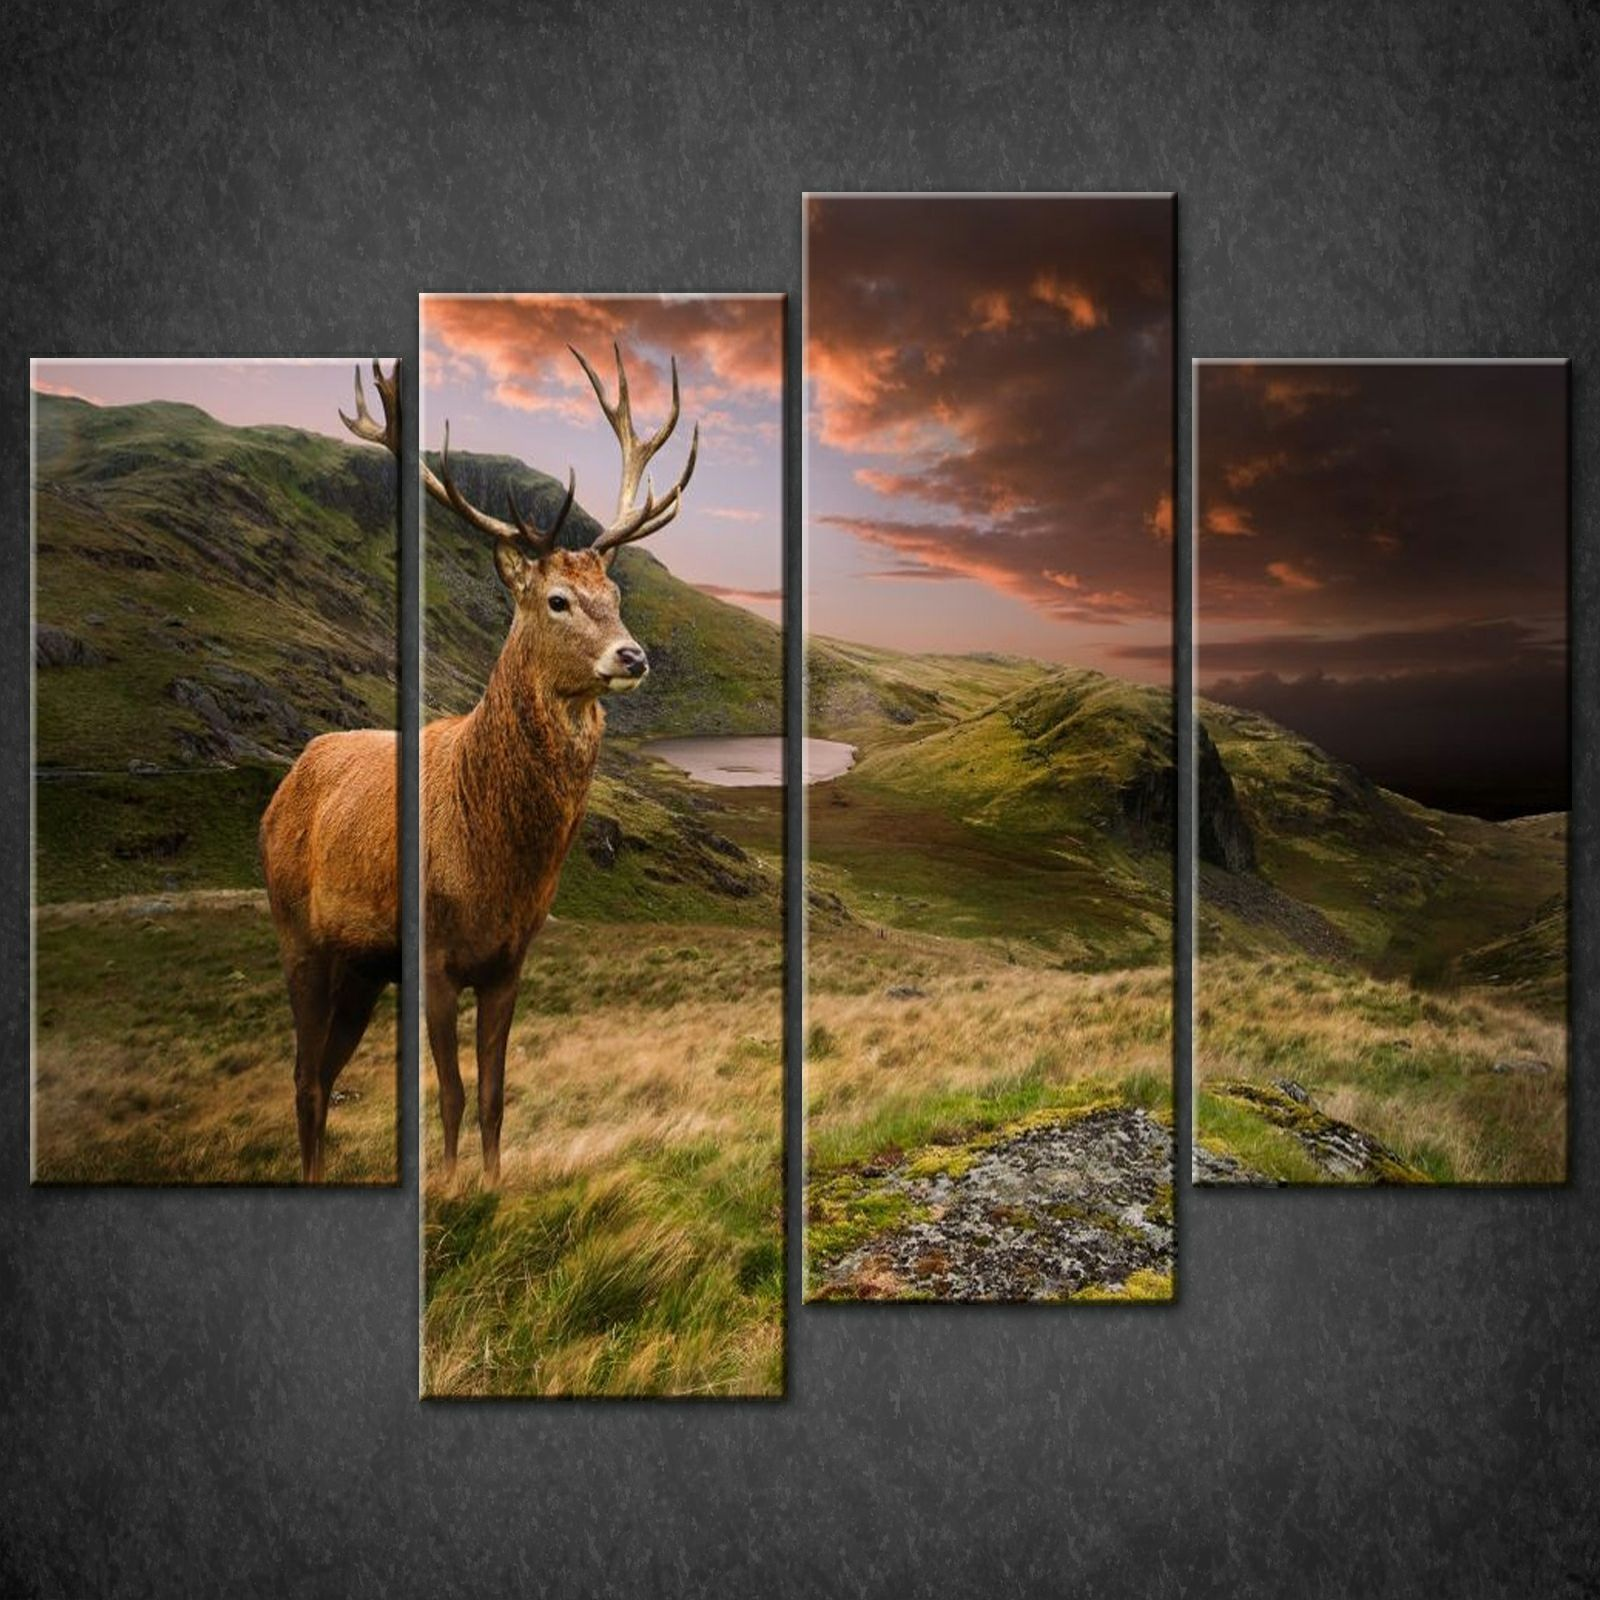 RED DEER SUNSET SPLIT CANVAS WALL ART PICTURES PRINTS LARGER SIZES AVAILABLE